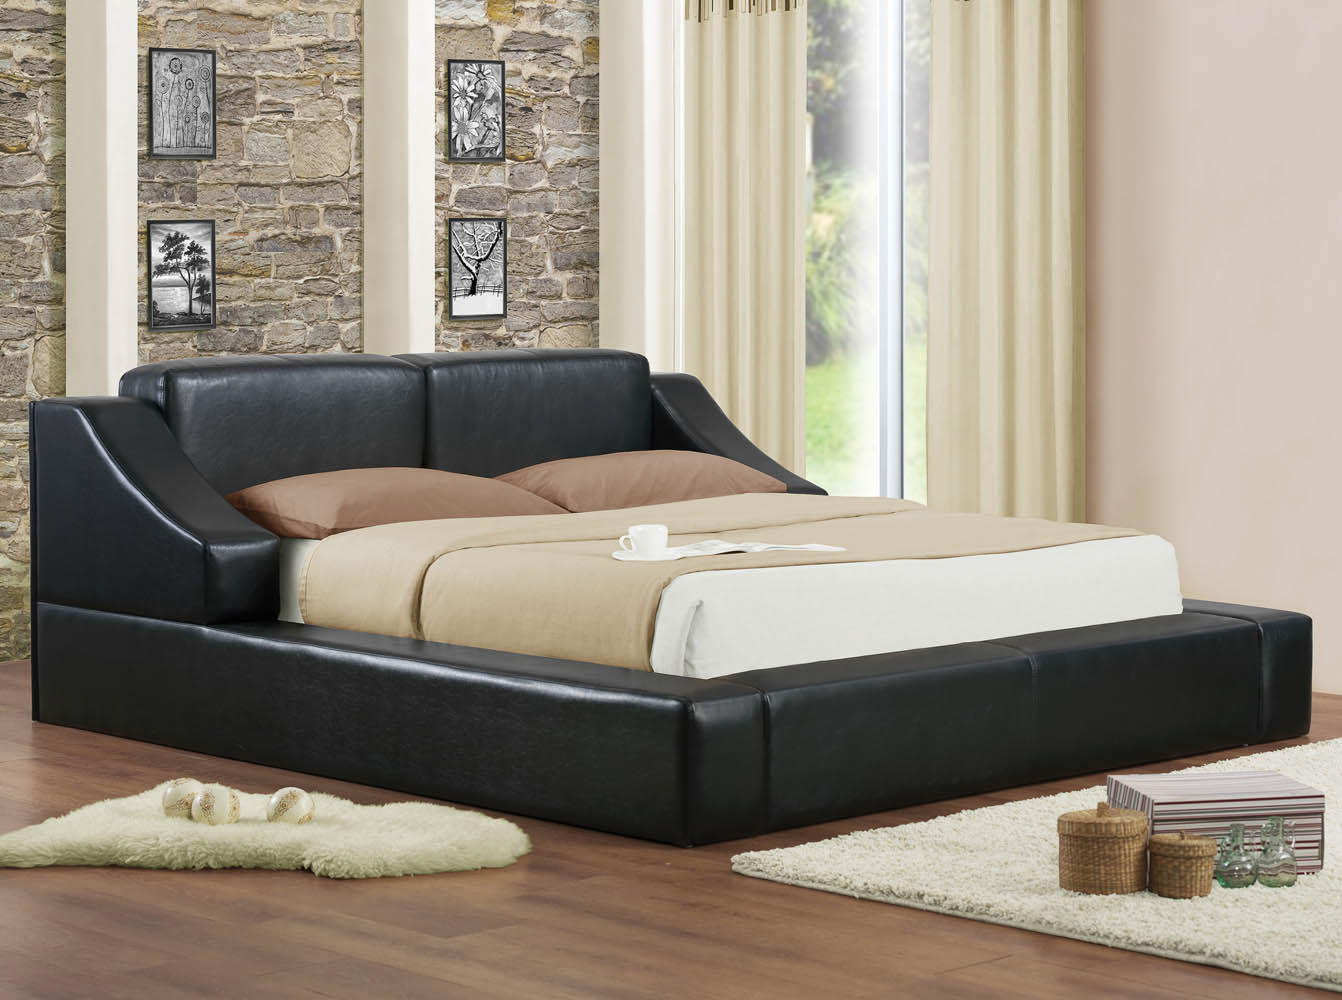 queen black upholstered platform bed frame